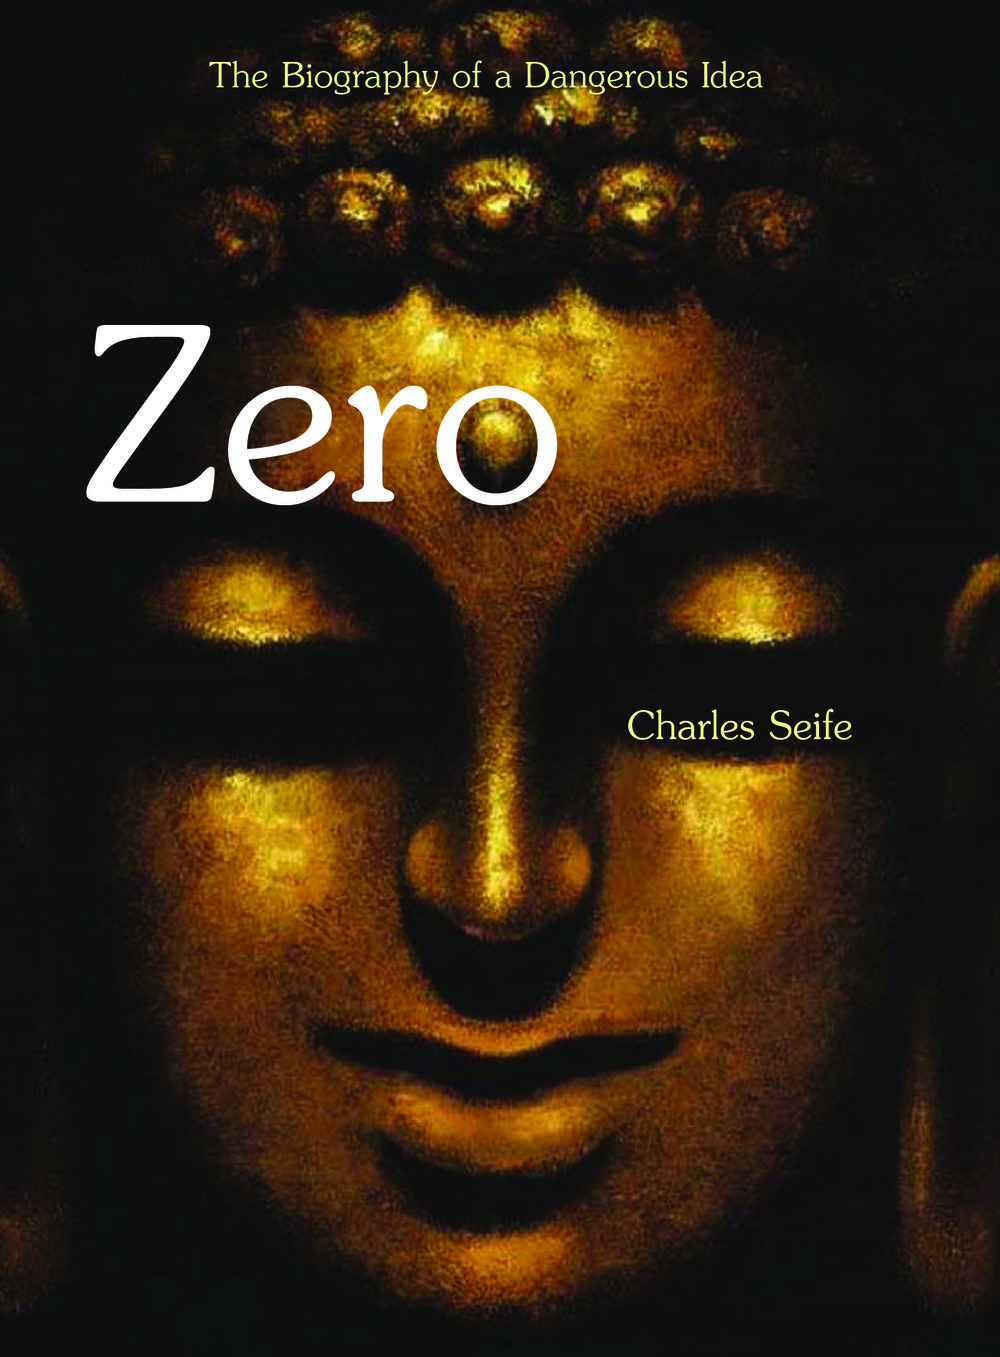 Zero book covers 10-07.jpg